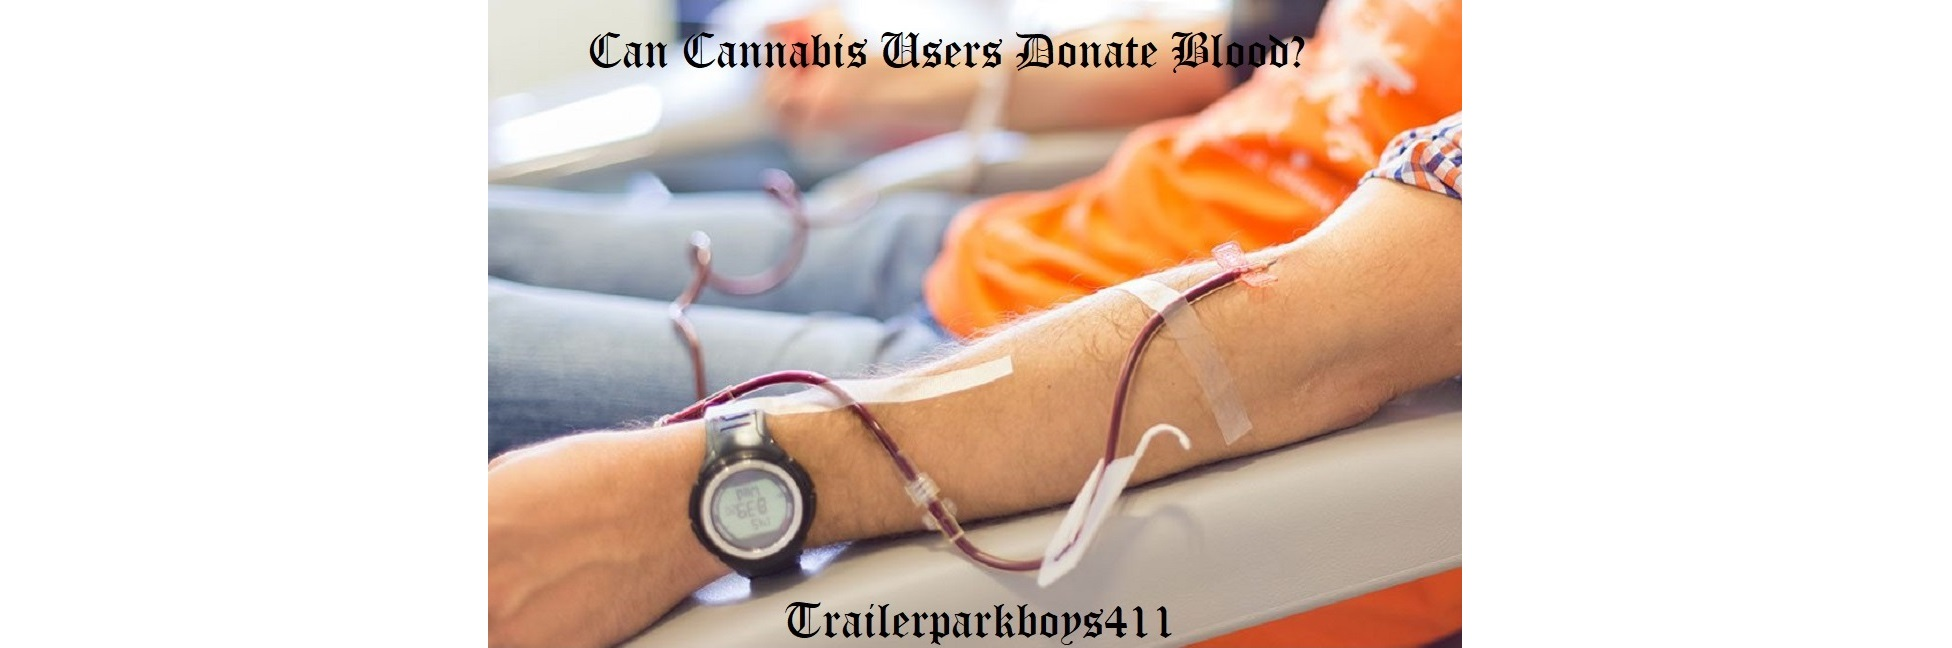 Can Cannabis Users Donate Blood